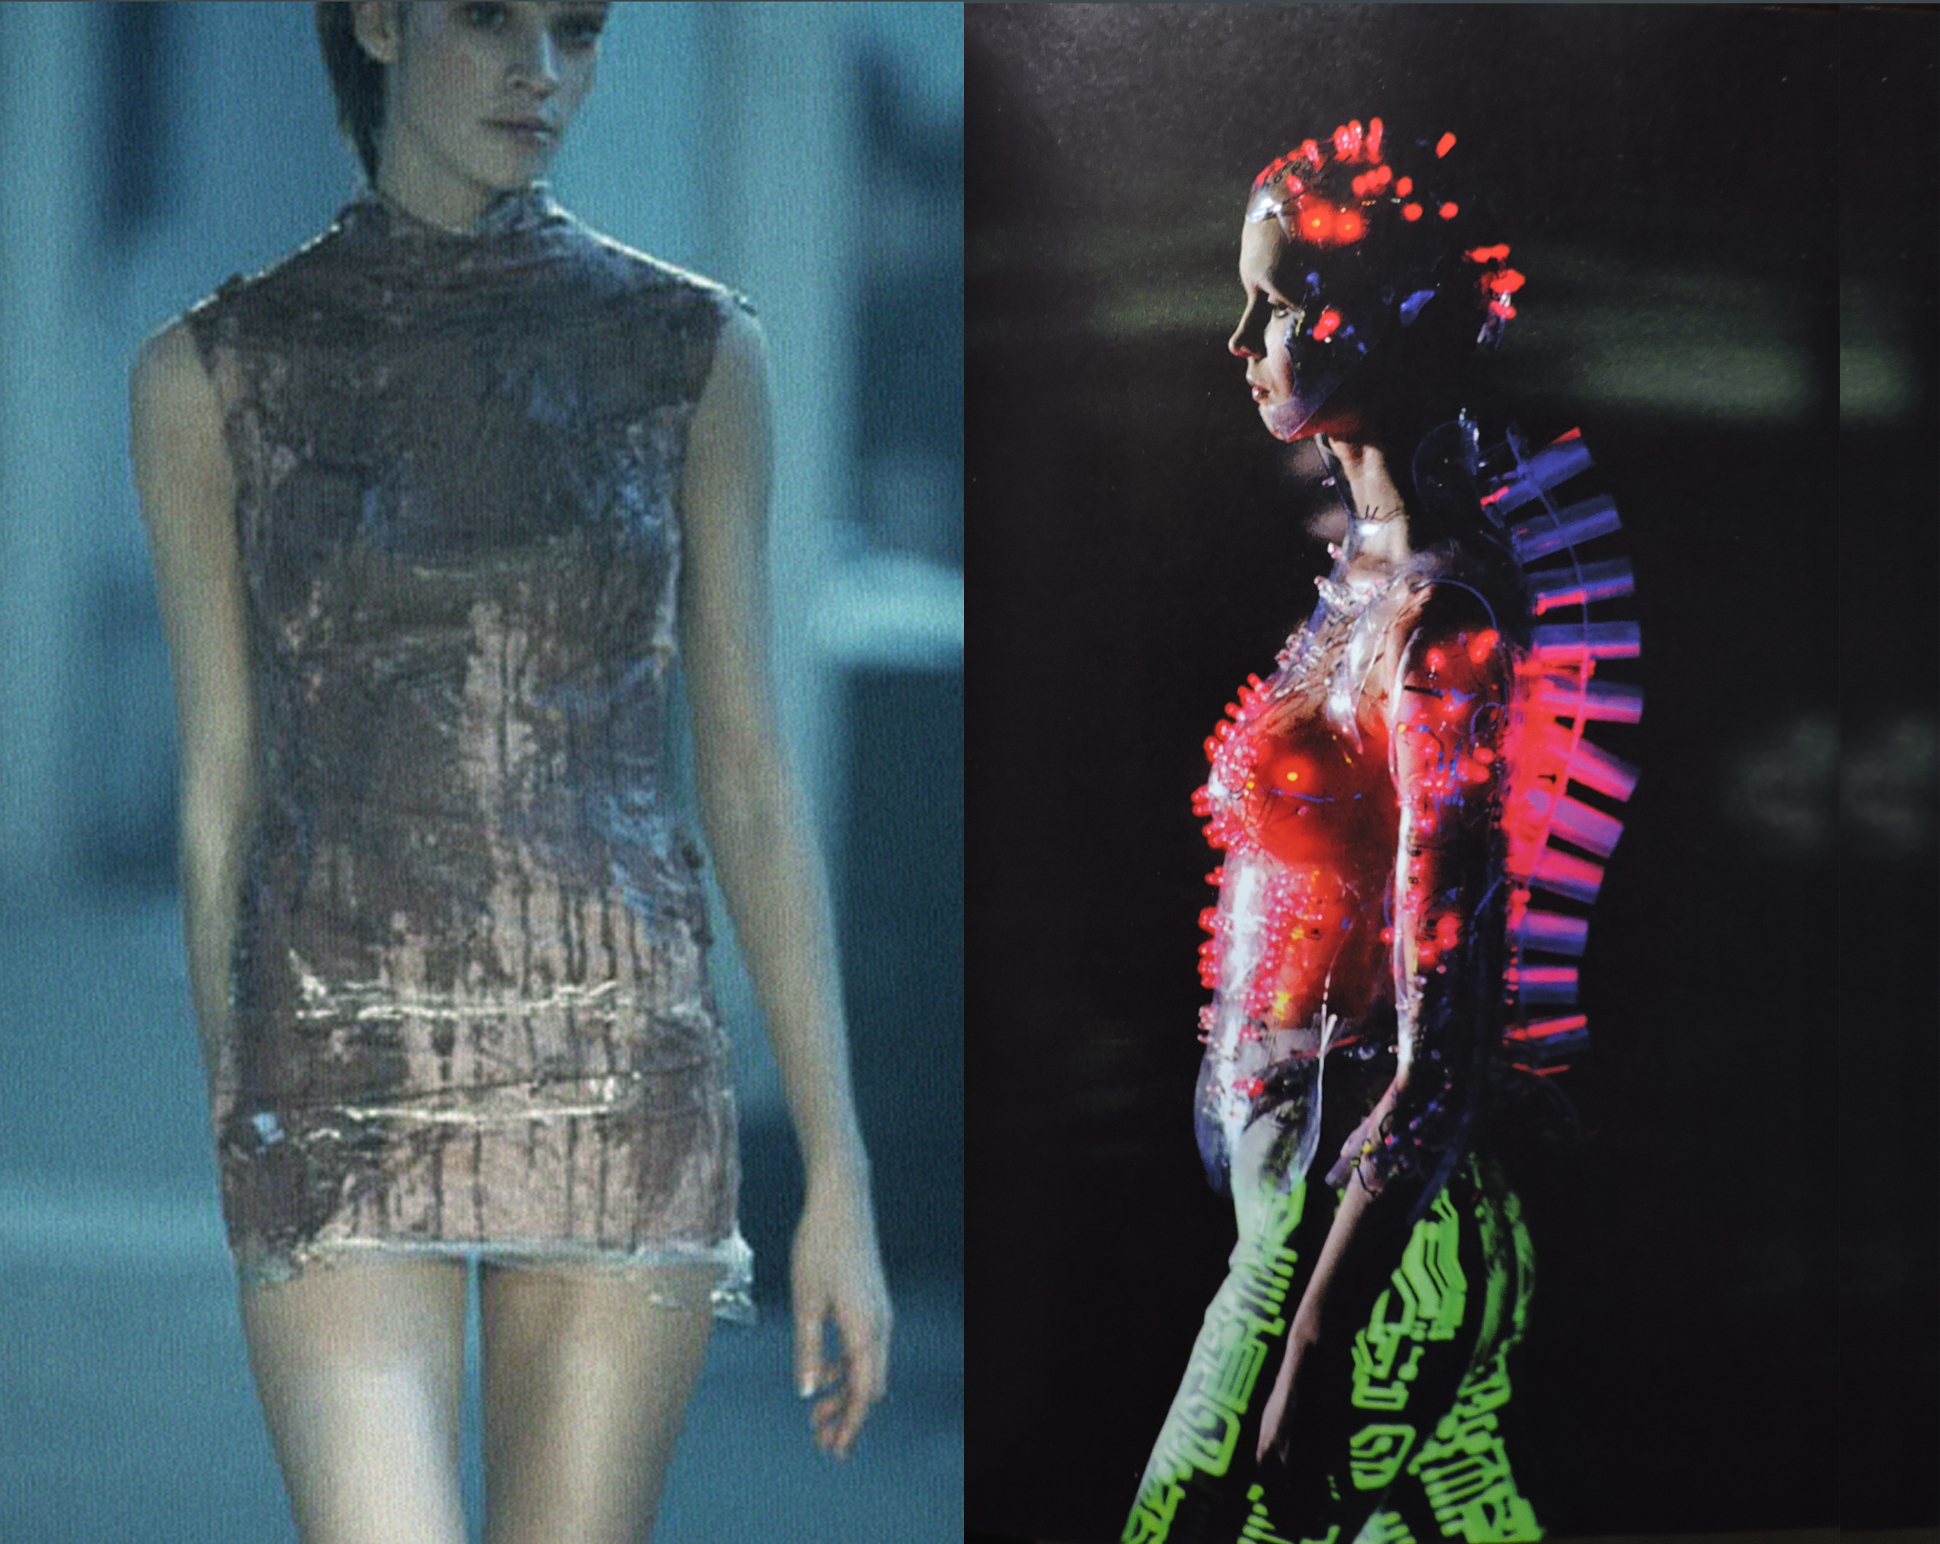 Plastic and LED. On the left, plastic and mud dress from Nihilism show, Spring/ Summer 1994. On the right: LED cyborg look, AW 1999-2000.